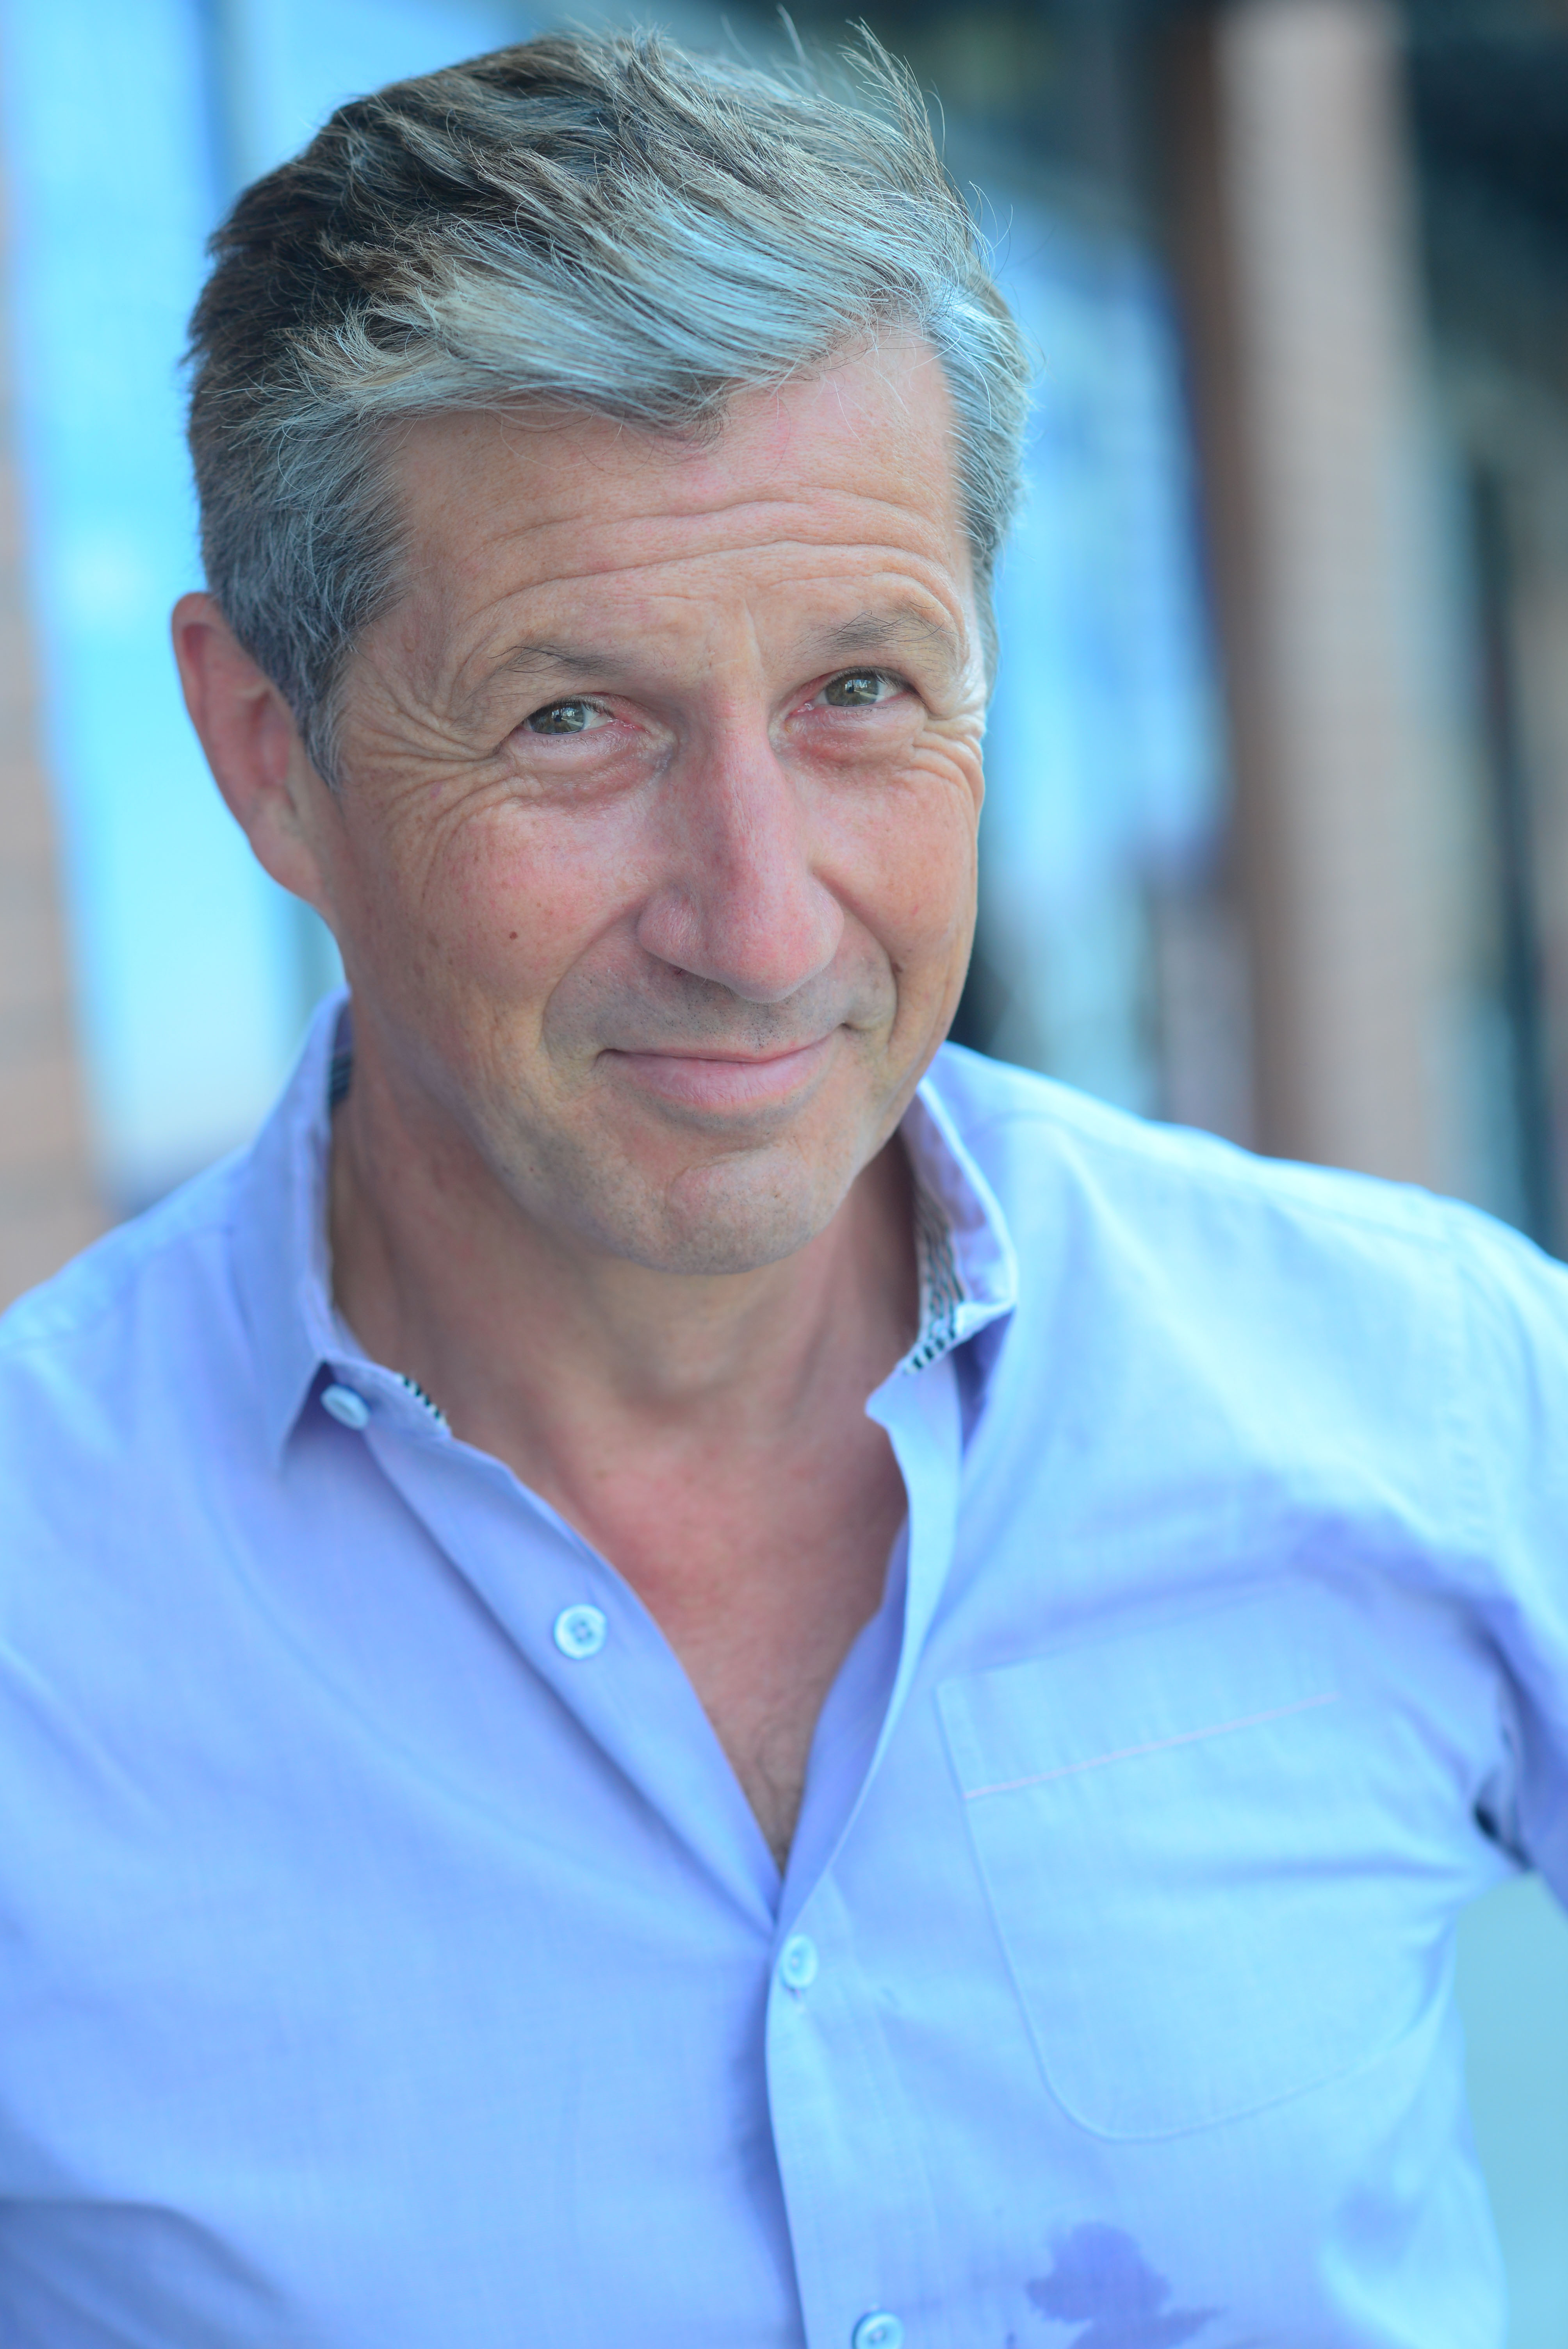 Charles Shaughnessy Net Worth